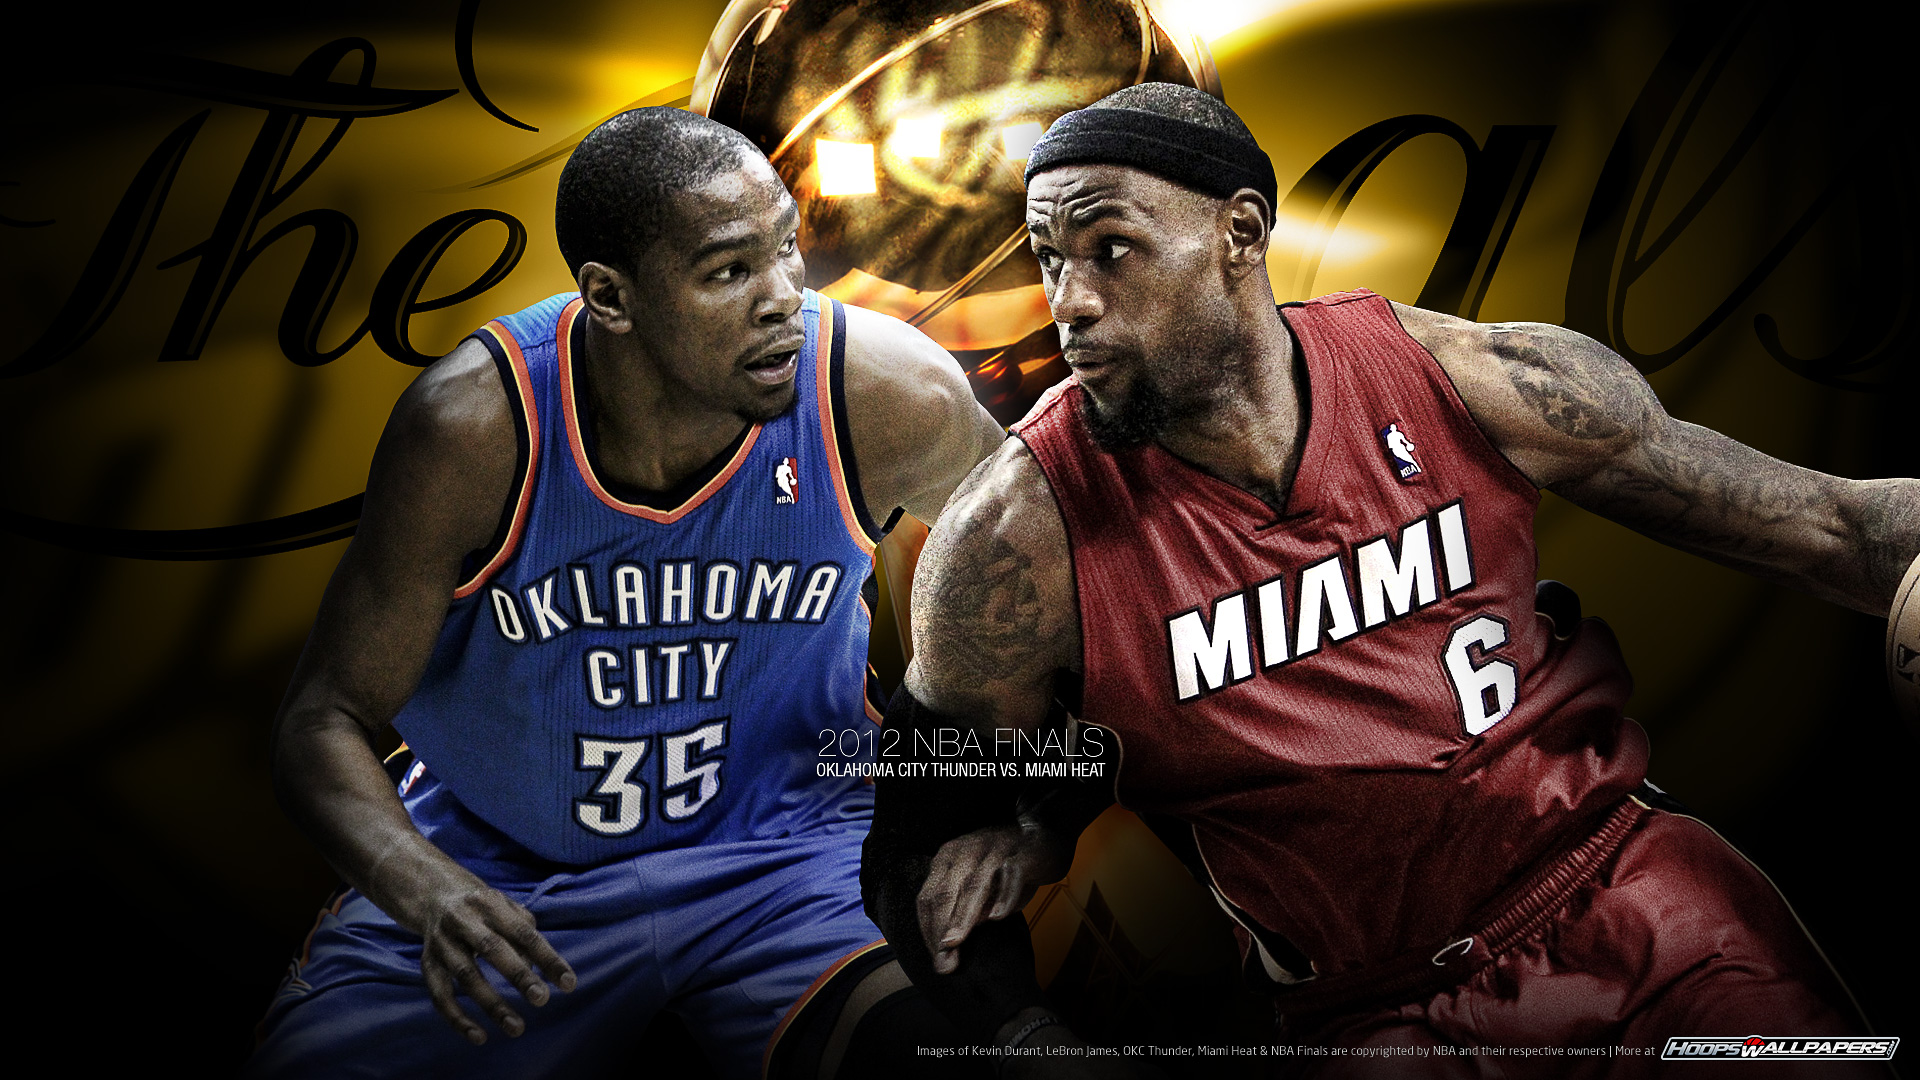 NBA Wallpaper Miami vs Oklahoma City